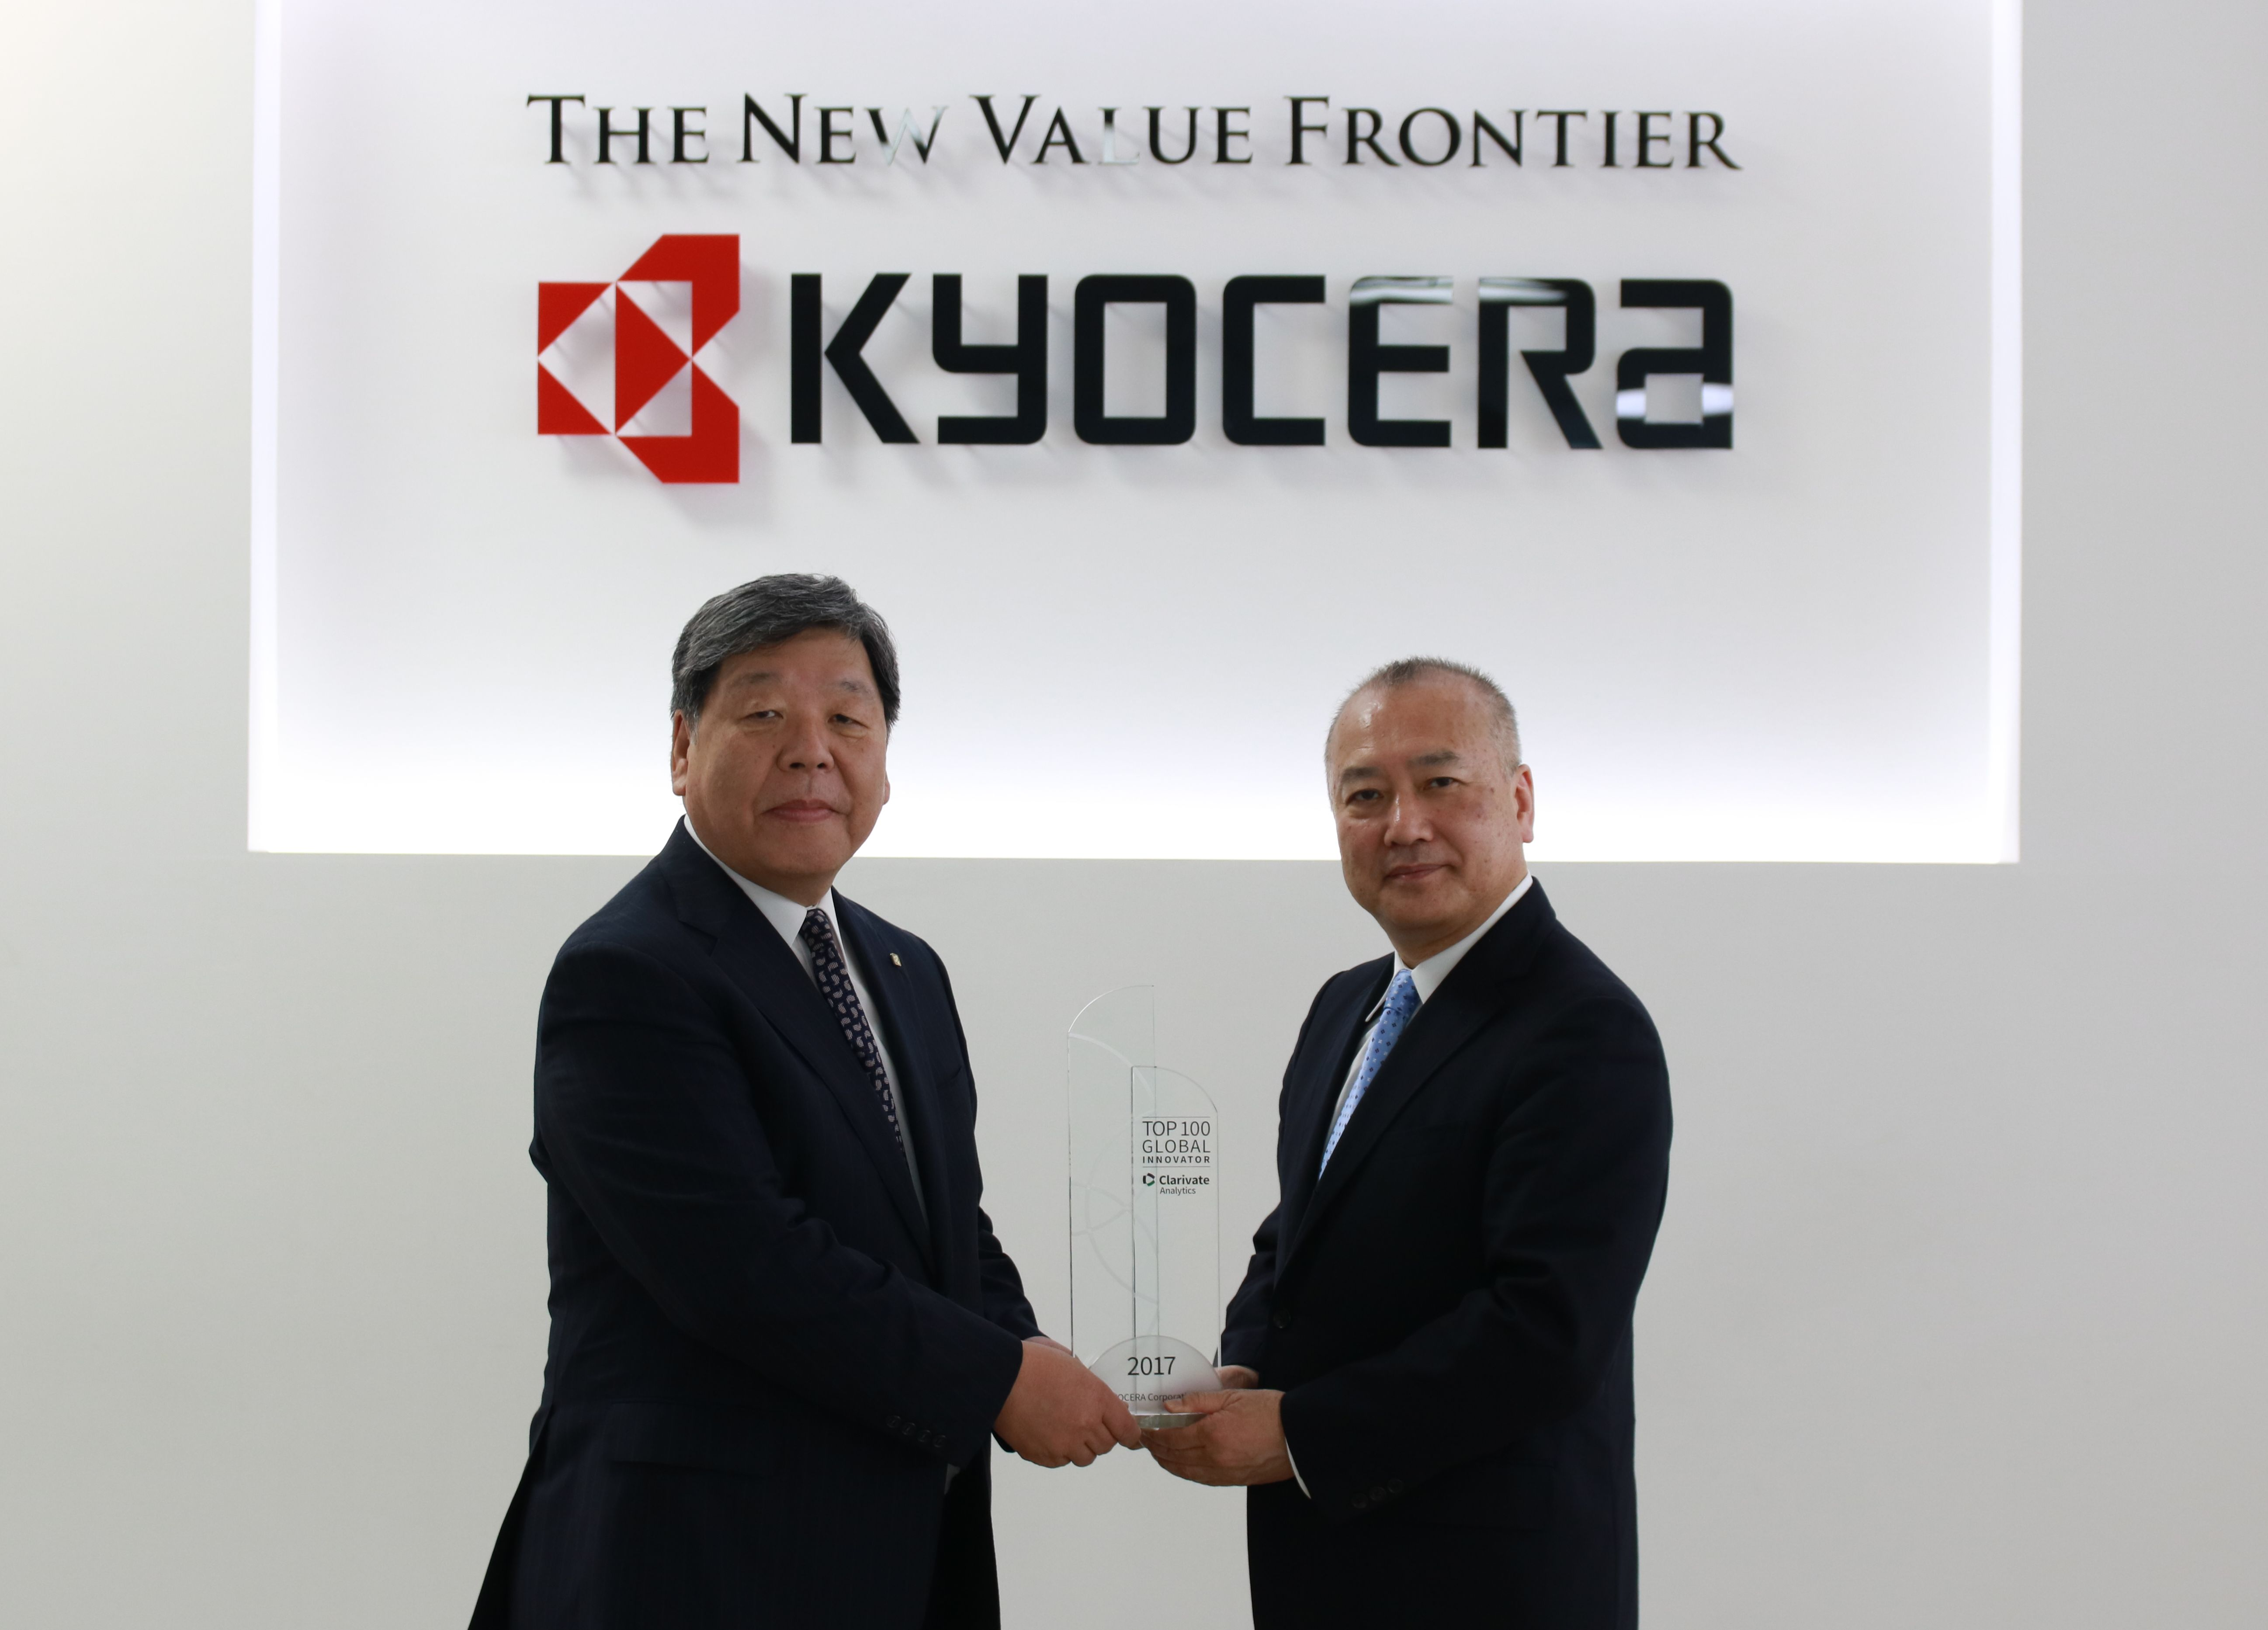 kyocera_named_among_top_100_global_innovators_by_clarivate_analytics.-cps-32211-image.cpsarticle.jpg